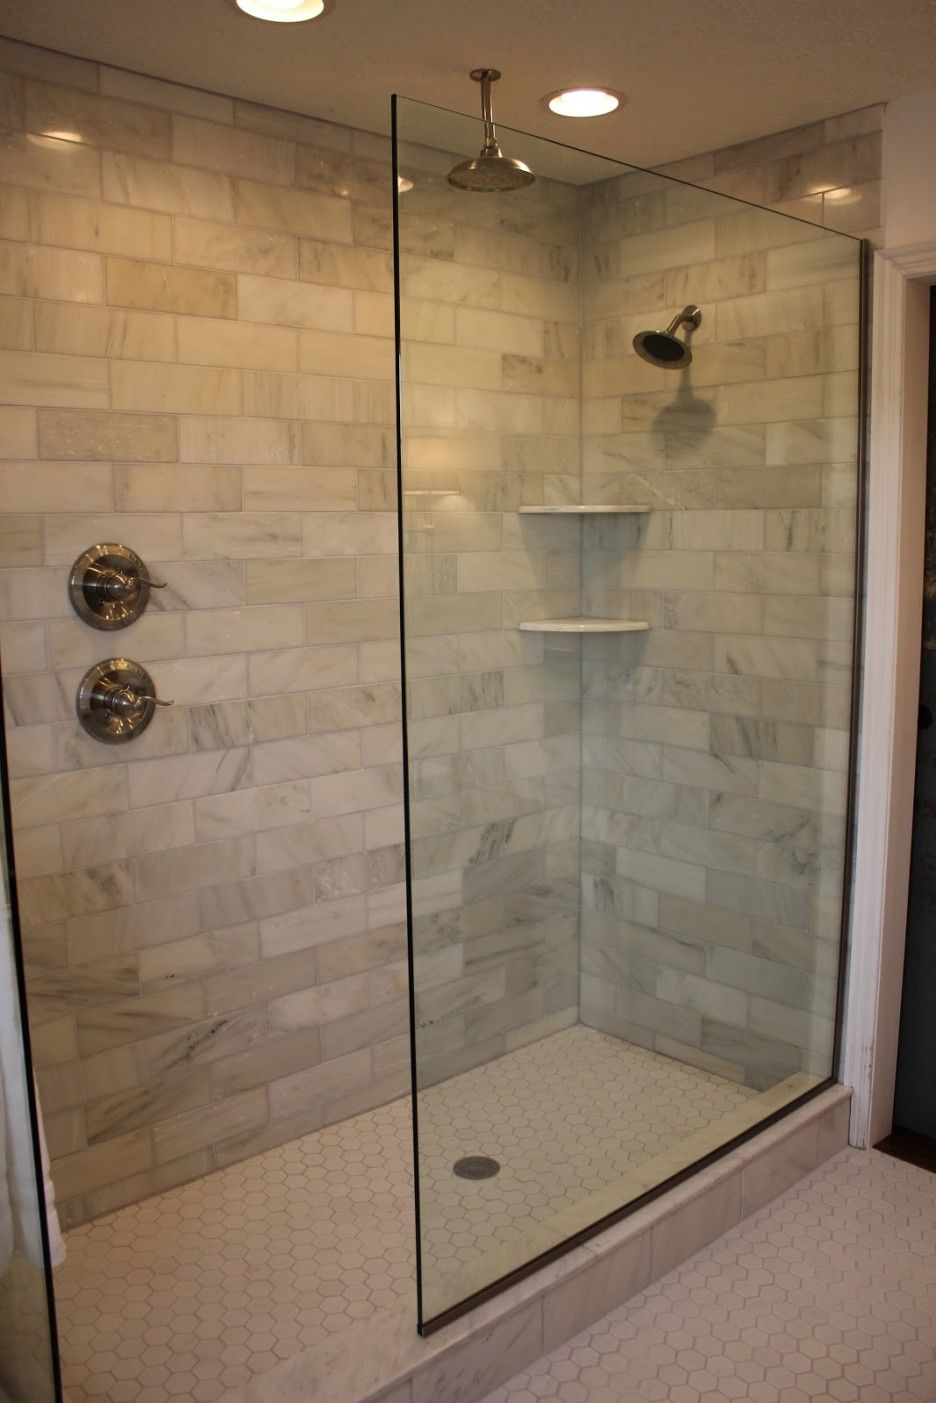 Doorless walk in shower designs shower handle on separate wall bathroom legs pinterest Bathroom floor plans walk in shower